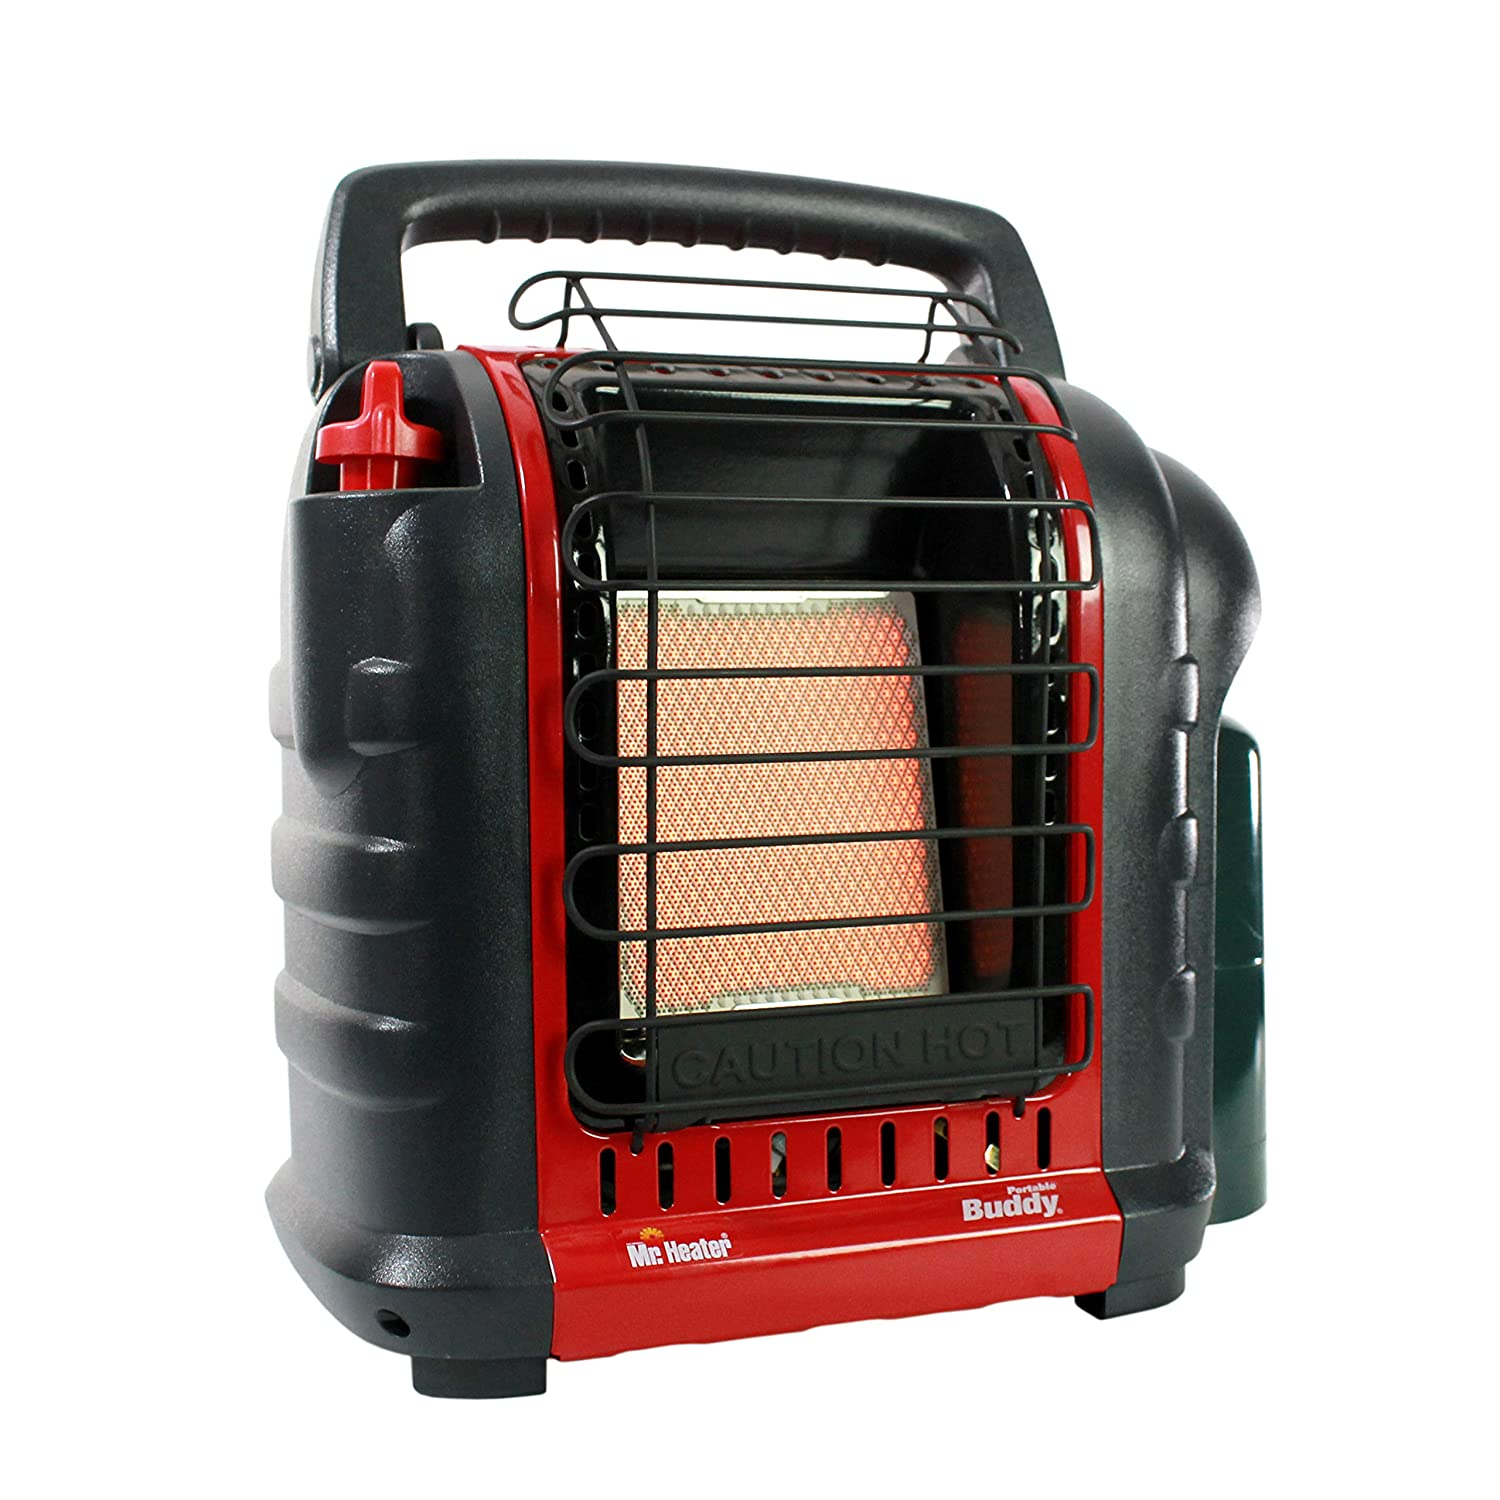 Best Garage Heater Reviews and Buying Guide 2